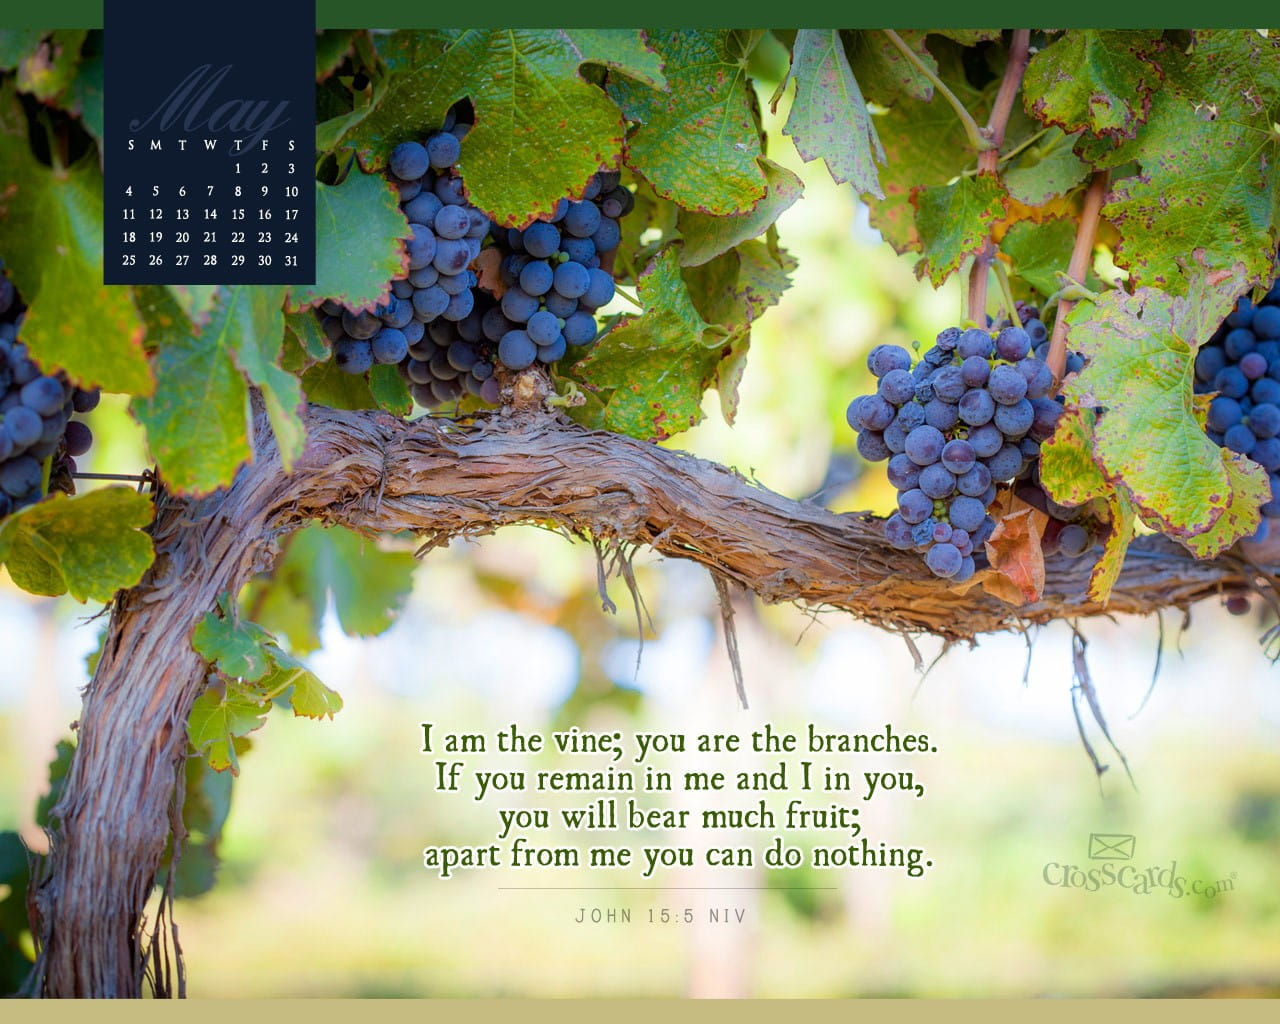 Fall Scripture Iphone Wallpaper May 2014 Vine And Branches Desktop Calendar Free May